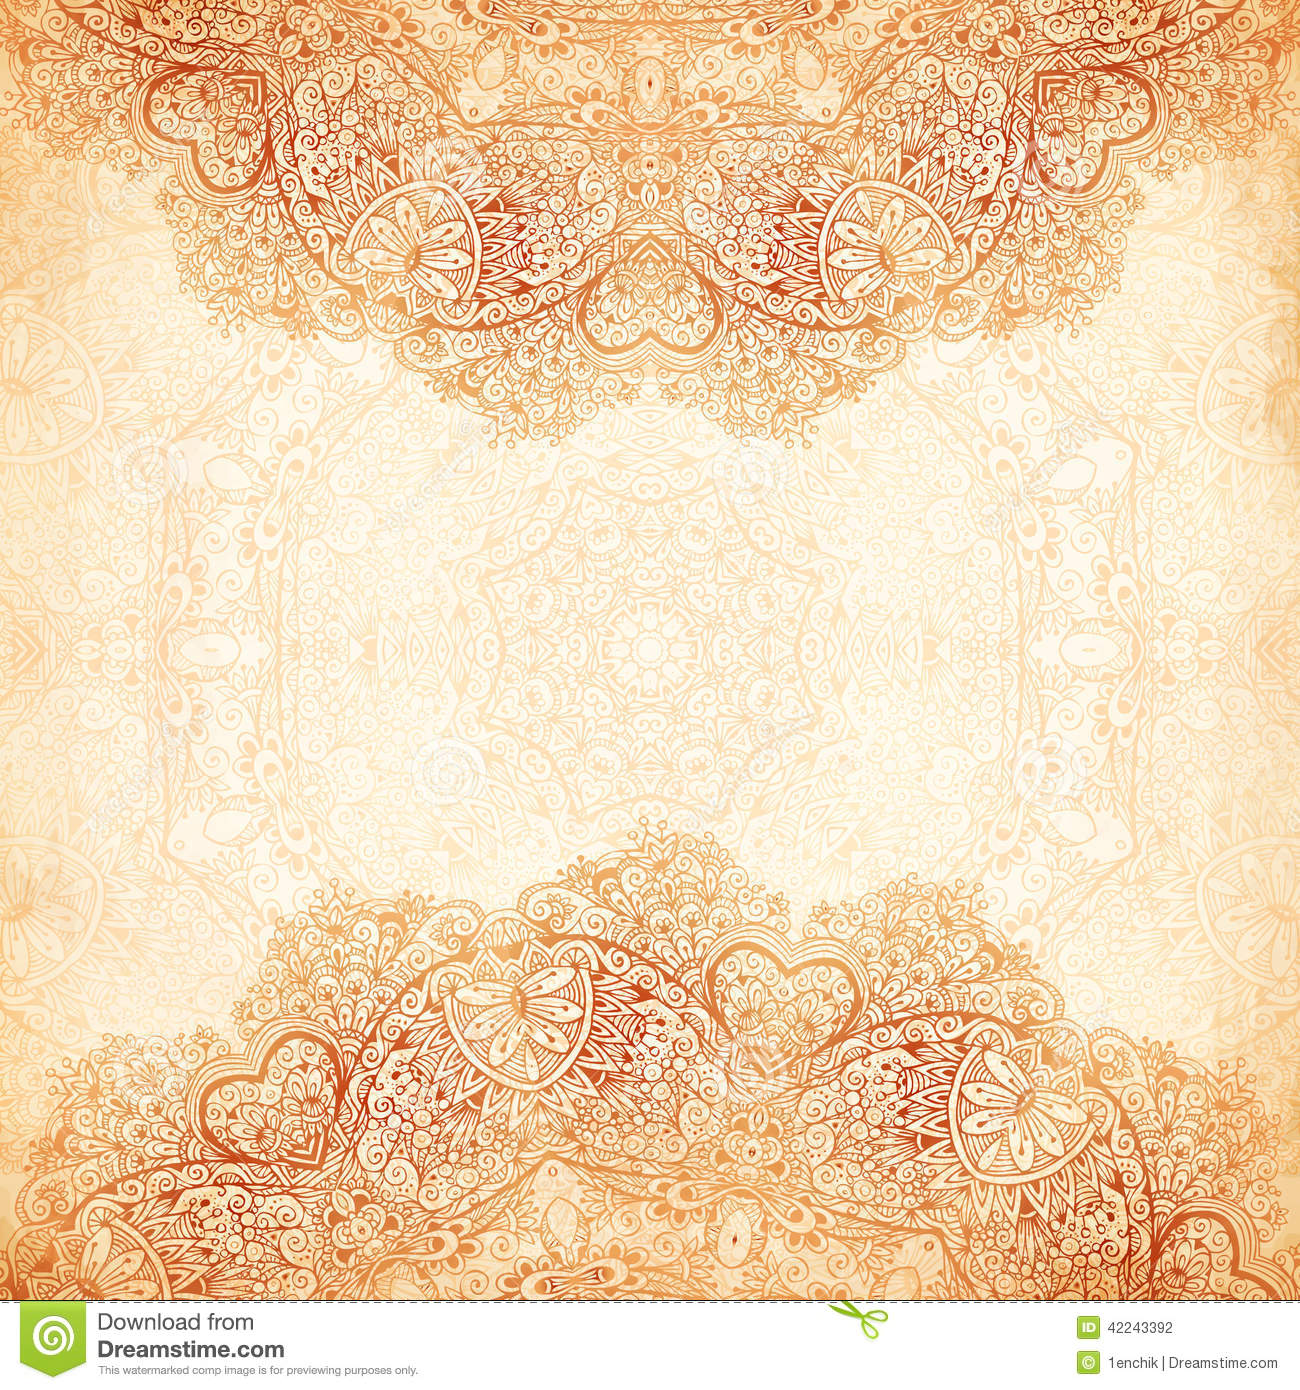 ornate vintage background in mehndi style stock vector Adult Coloring Vector Blue Vector Design